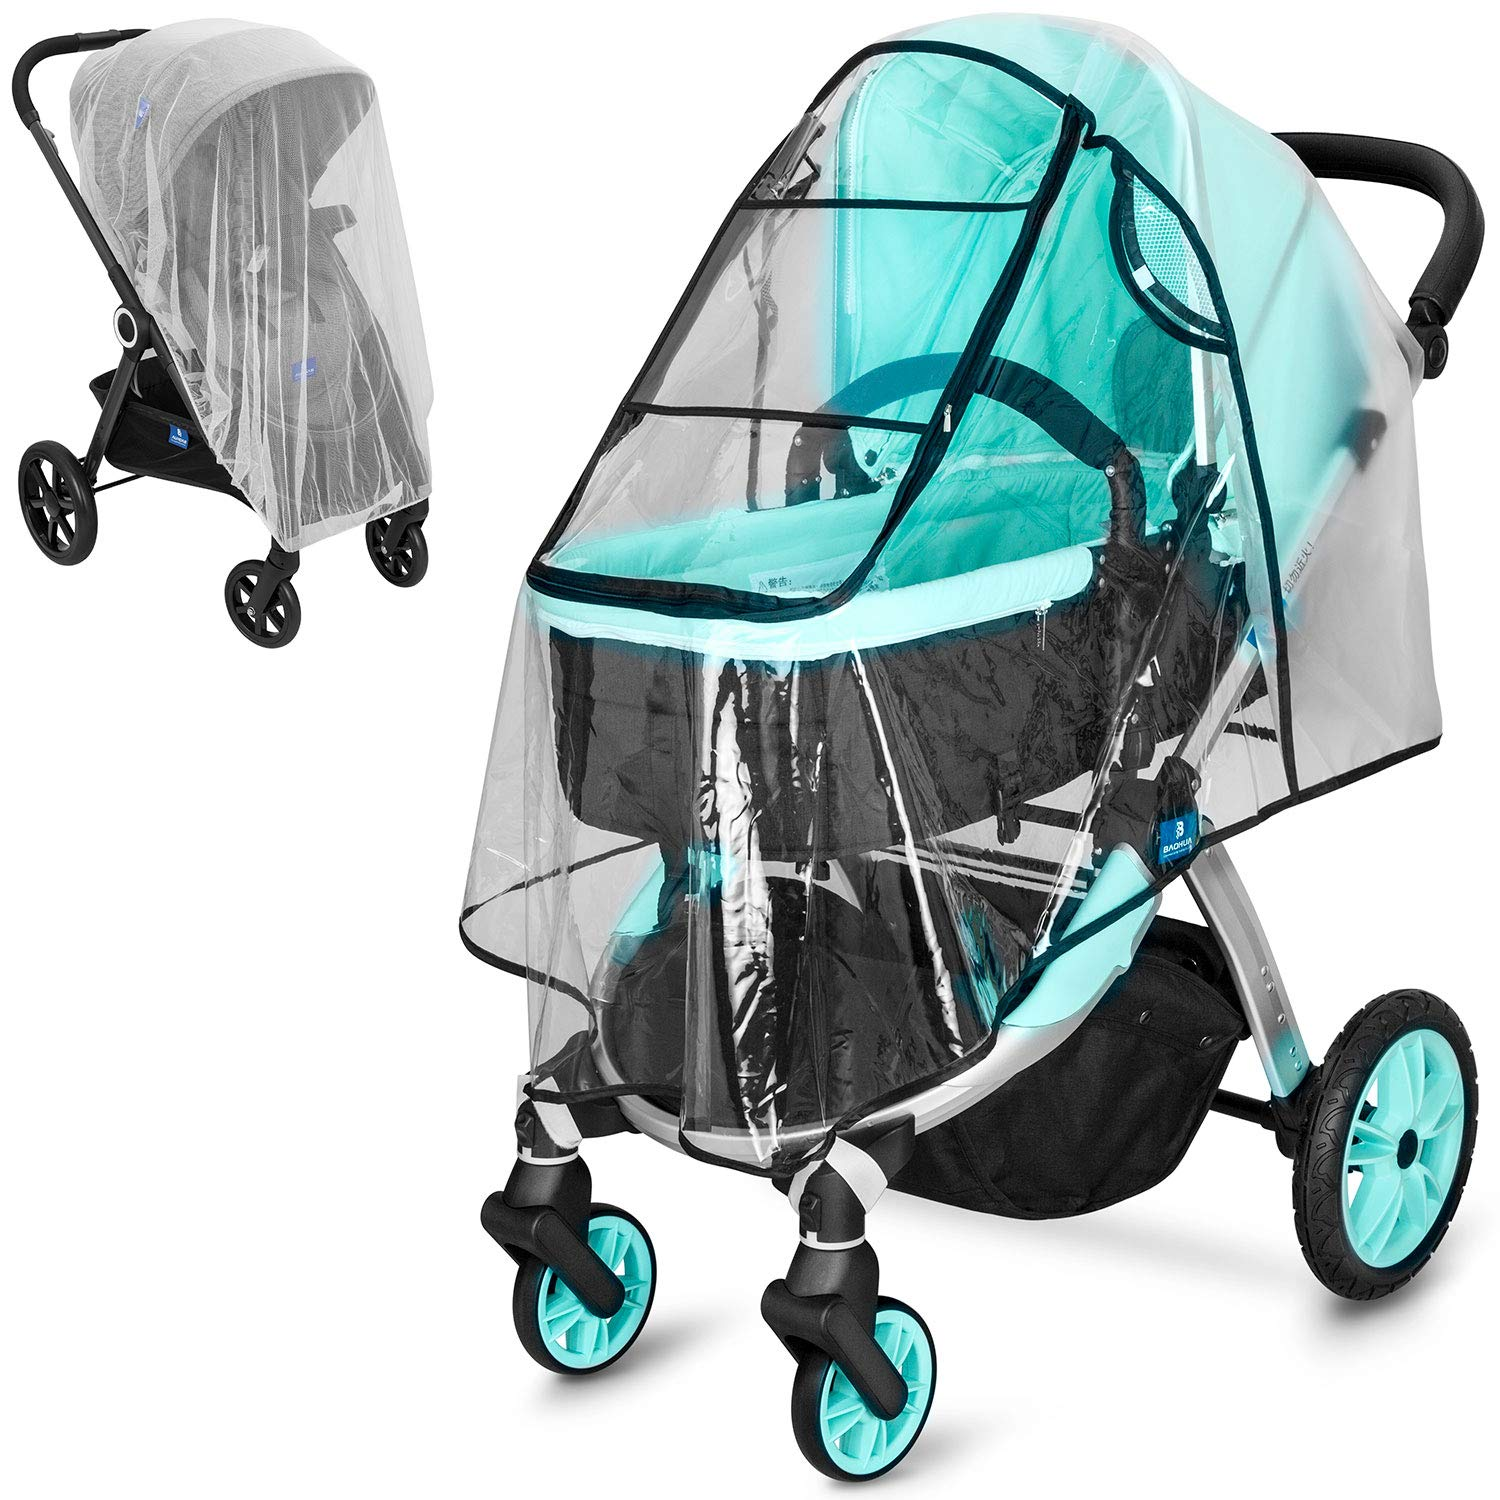 Stroller Rain Cover and Baby Stroller Mosquito Net(2-Piece Set),Baby Travel Weather Shield, Universal, Windproof Waterproof, Protect from Dust Insects